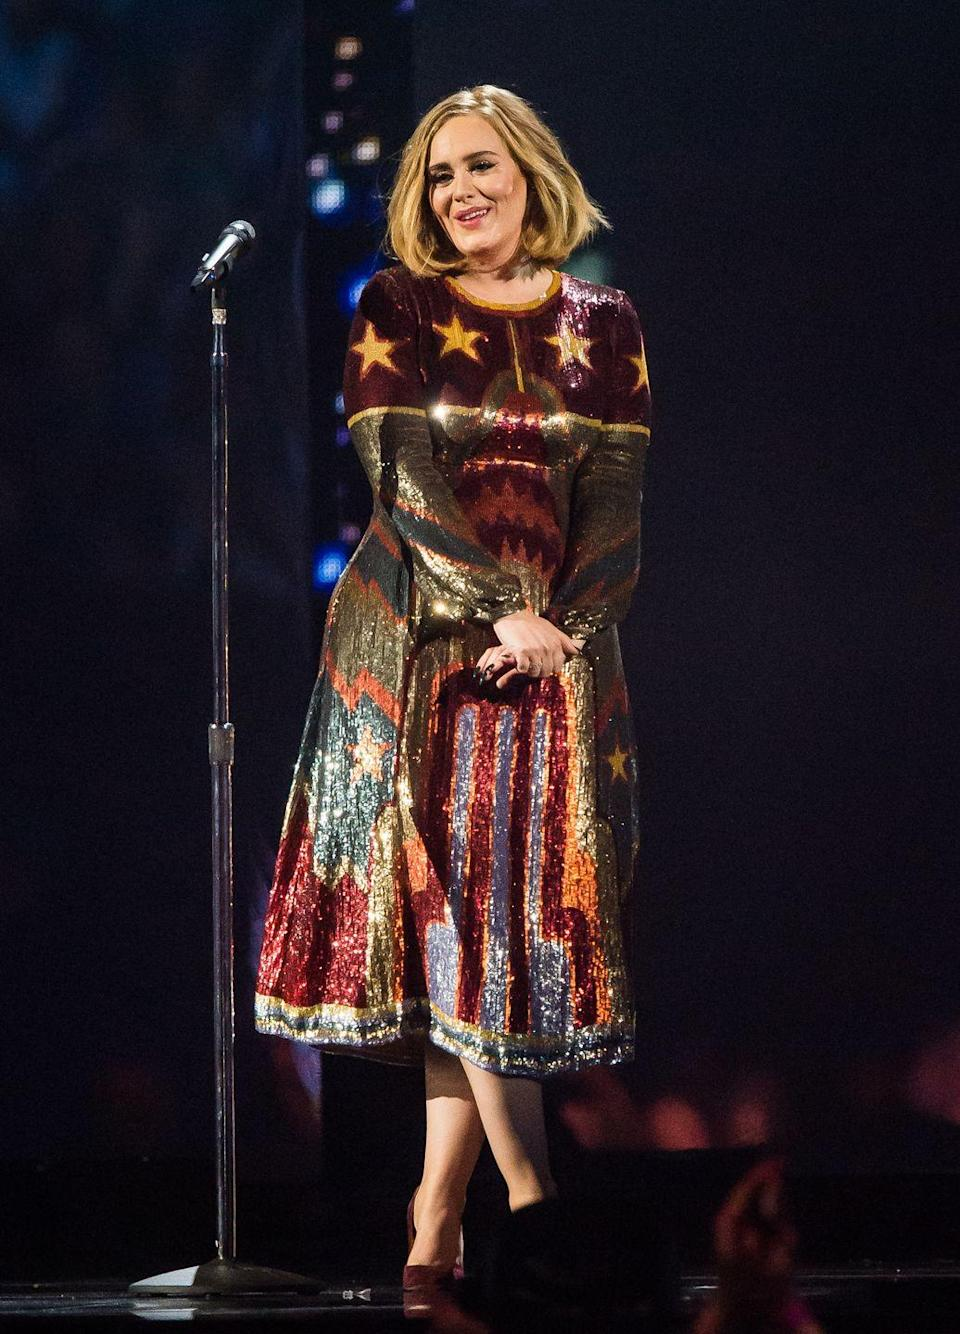 <p>Adele took to the stage during the 2016 Brit Awards to both perform and collect multiple awards, wearing this playful sequinned Valentino dress. </p>